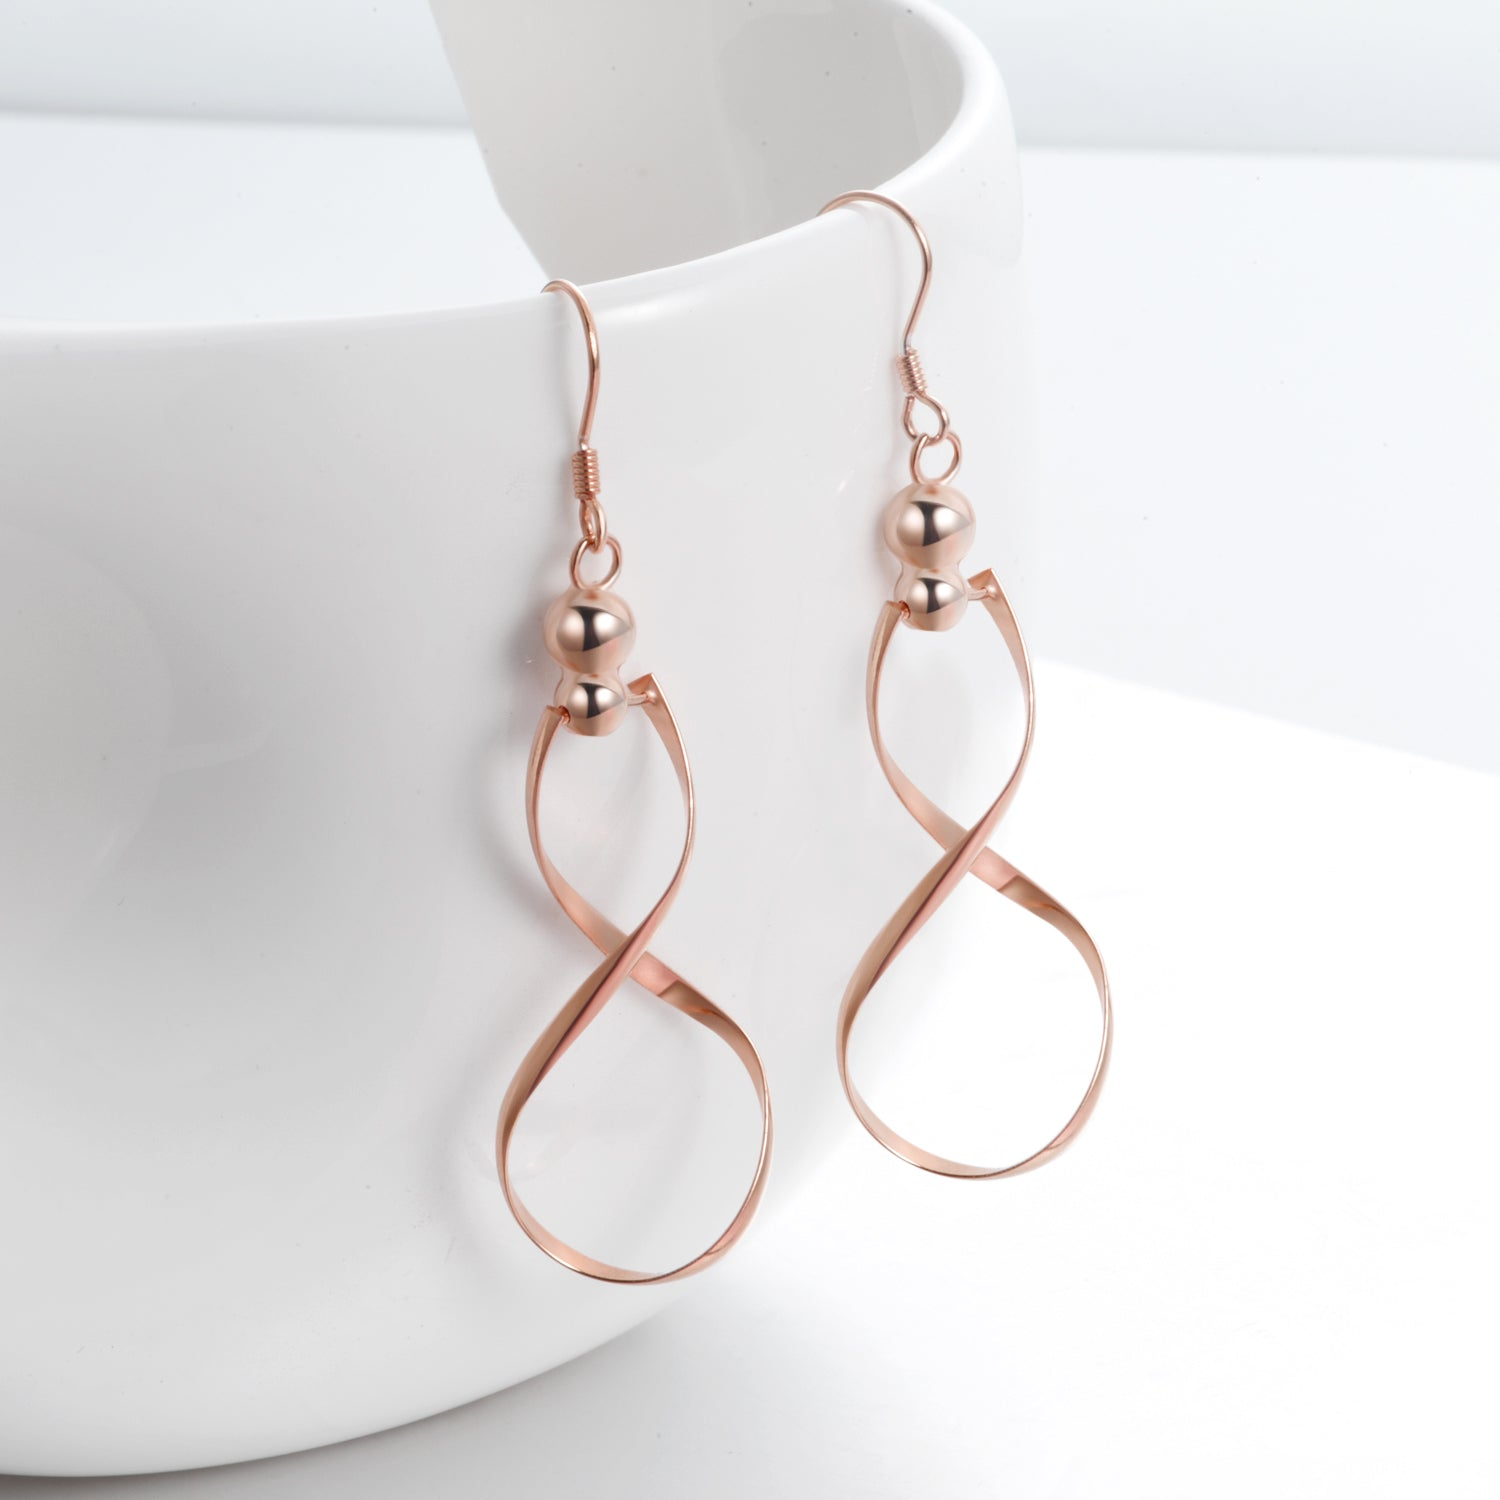 Infinity Earrings Best Selling Rose Golding Plating Small Moq Earrings